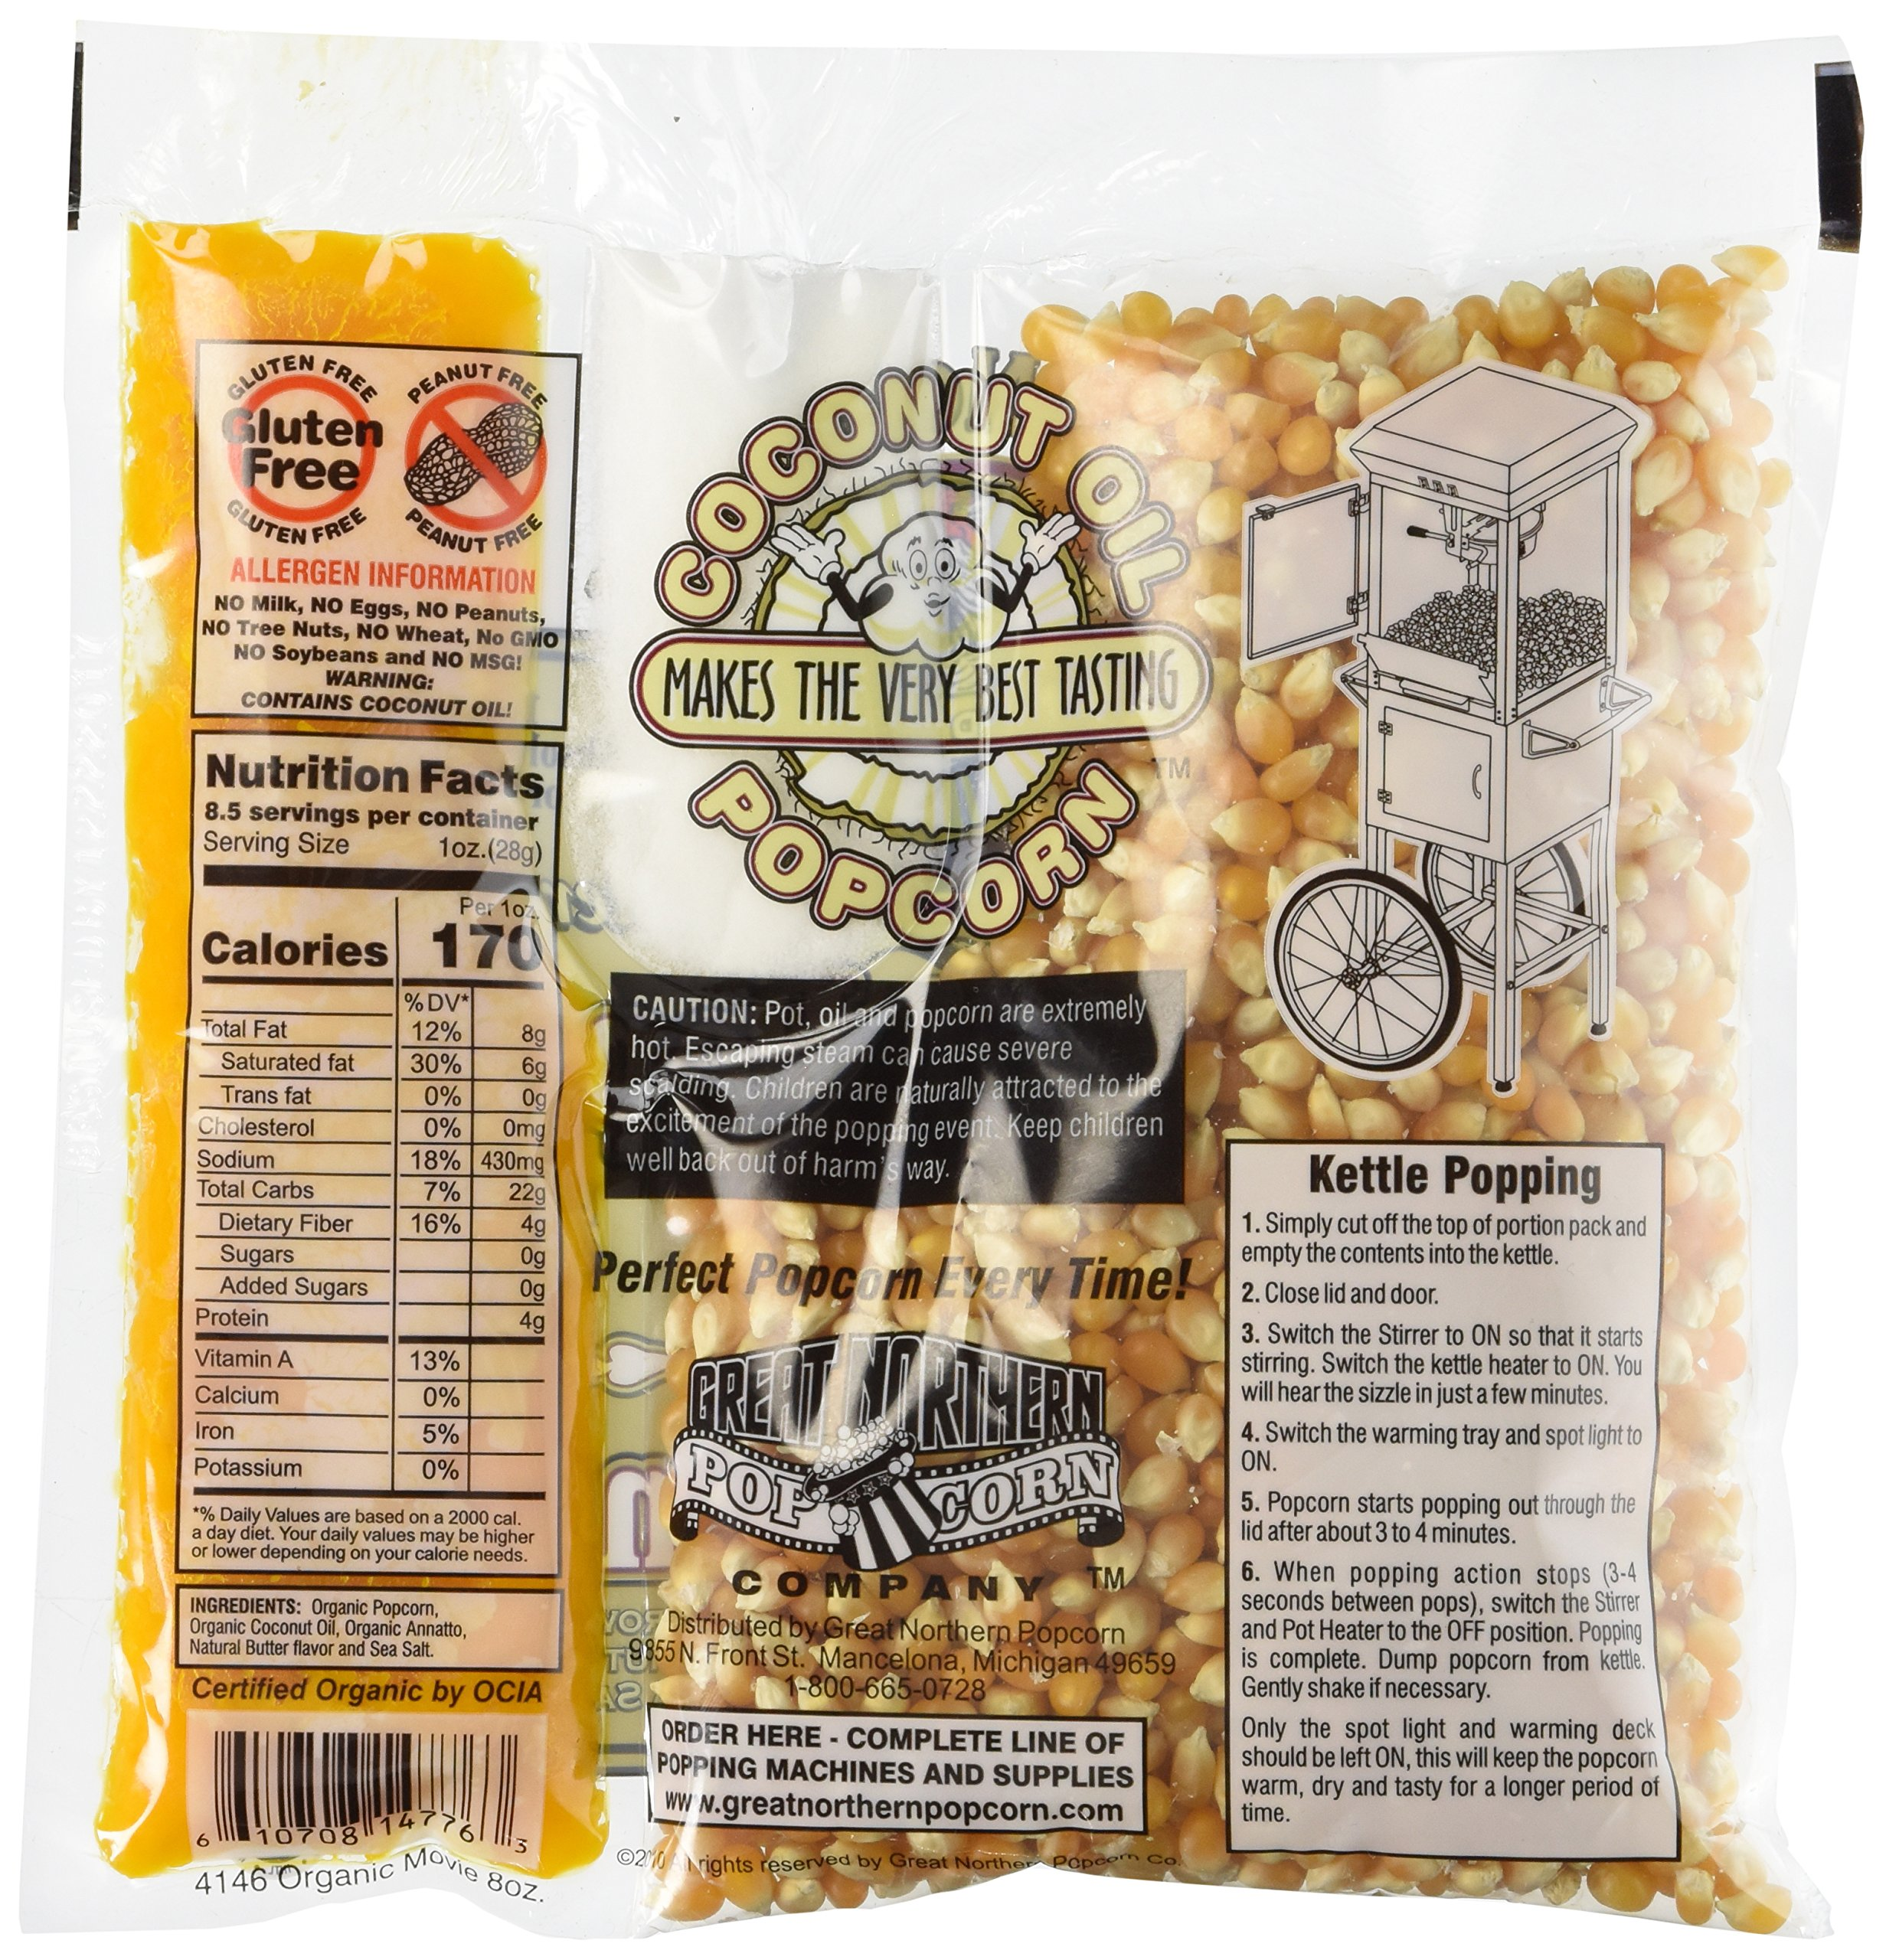 4147 Certified Organic 8 Oz Movie Theater Great Northern Popcorn Portion Packs 18ct by Great Northern Popcorn Company (Image #4)